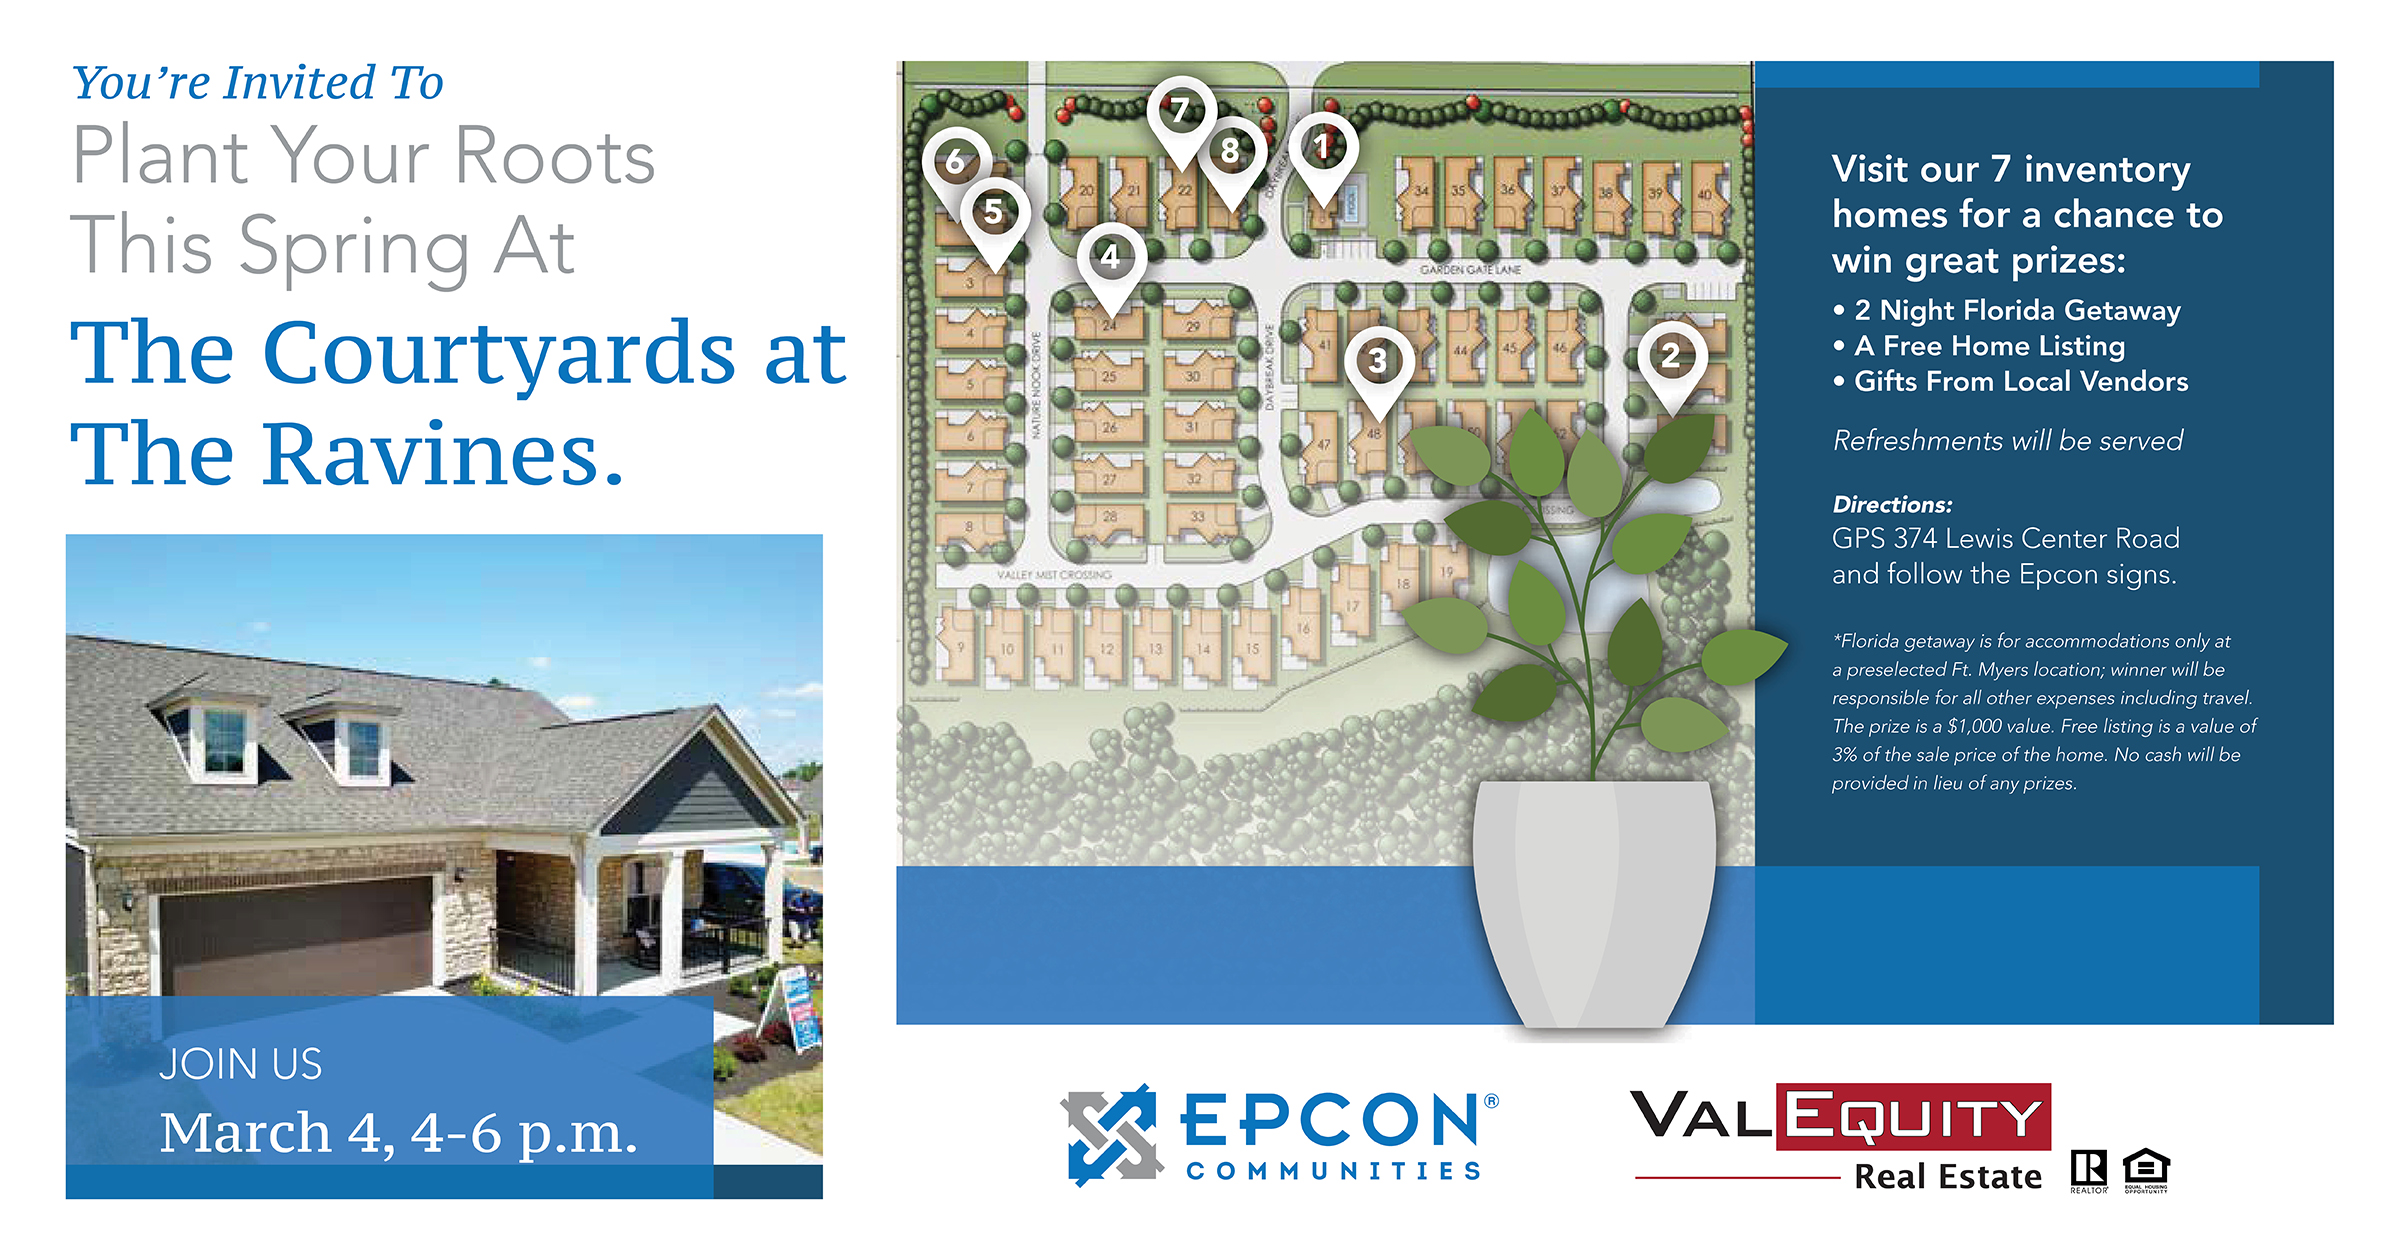 Epcon Communities and ValEquity Real Estate Open House